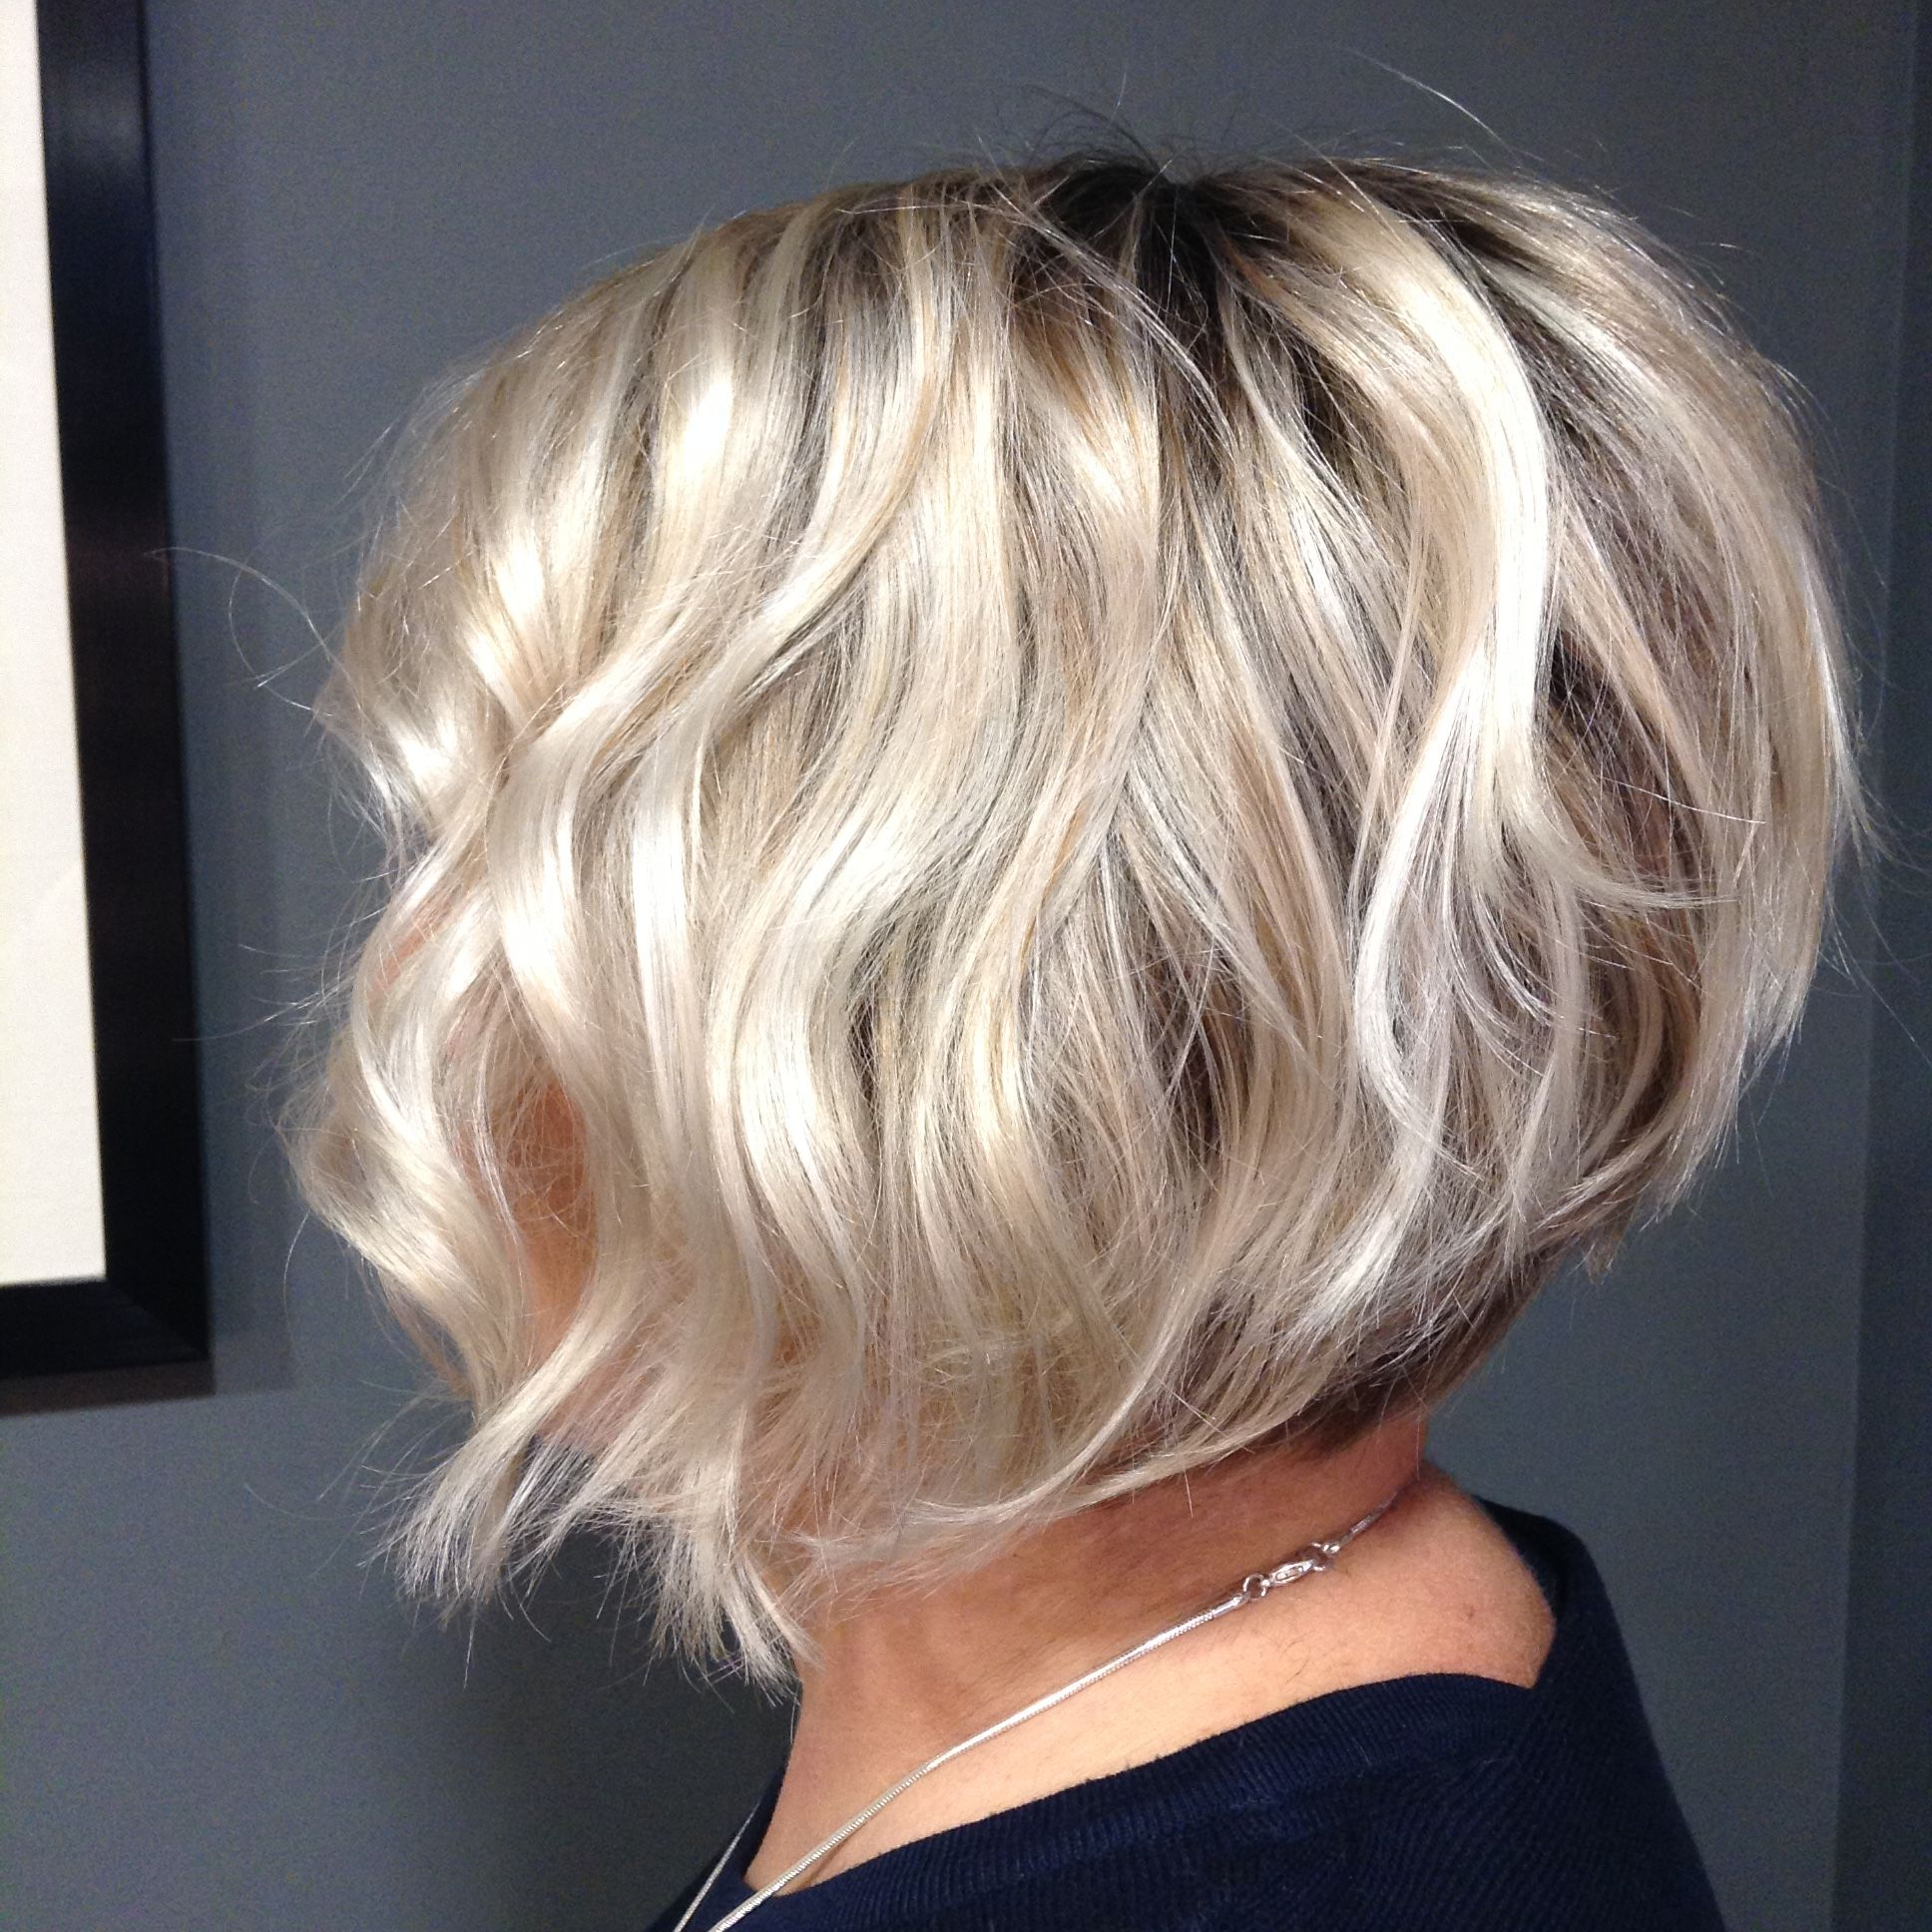 Popular Sassy Wavy Bob Hairstyles Regarding Sassy Wavy Bob With Clean Blonde Hi Lites (View 2 of 20)